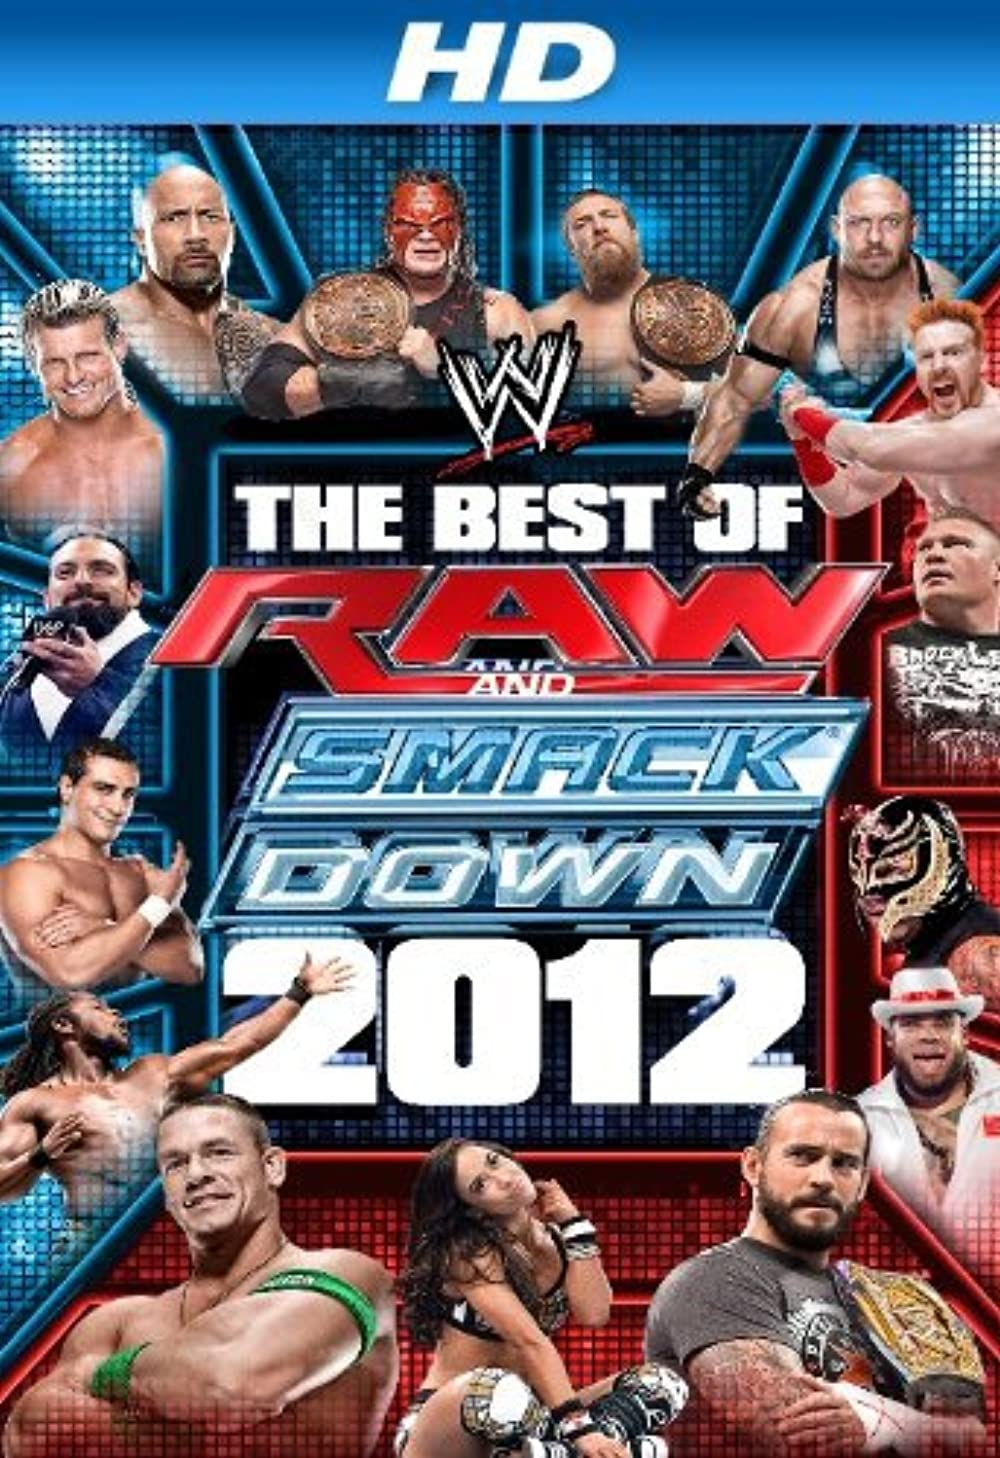 Watch WWE: The Best of Raw & SmackDown 2012, Volume 1 Online